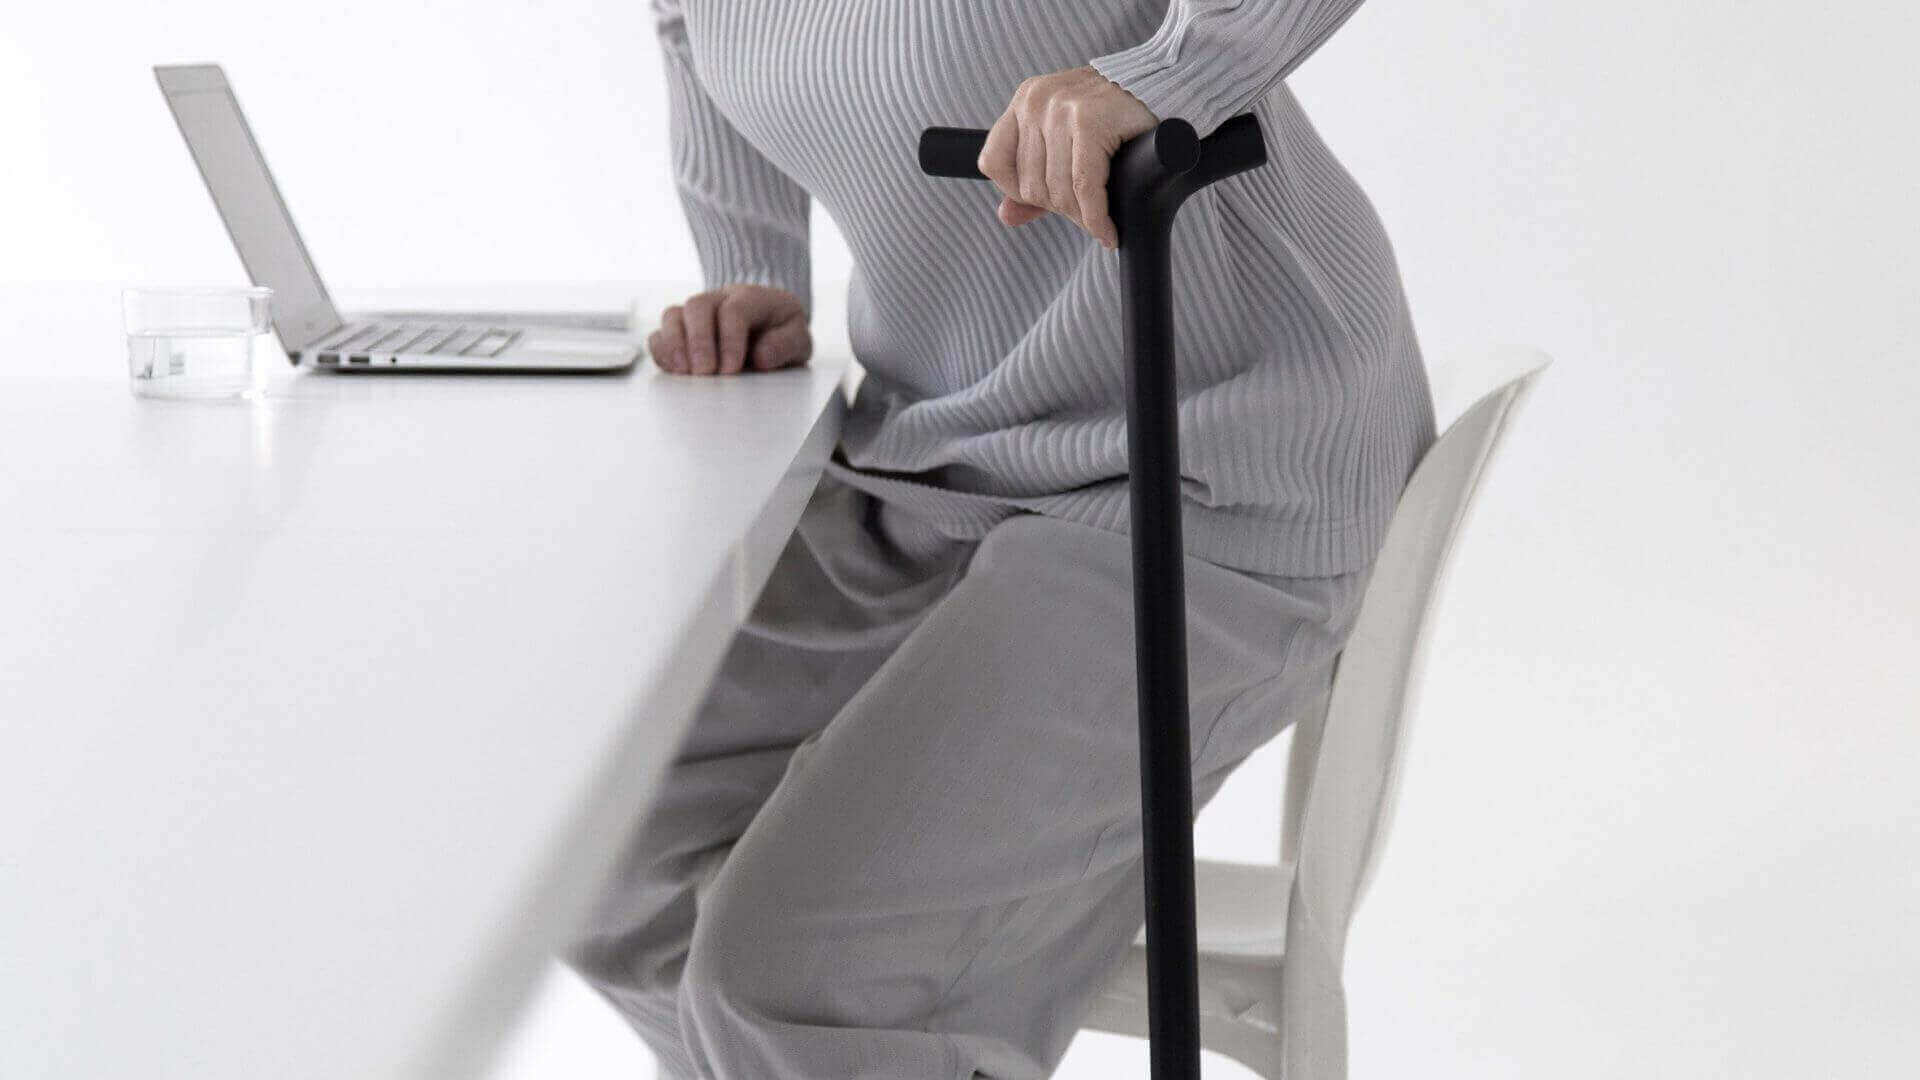 Shiro Studio 3D Prints Stylish and Practical ENEA Walking Stick | All3DP